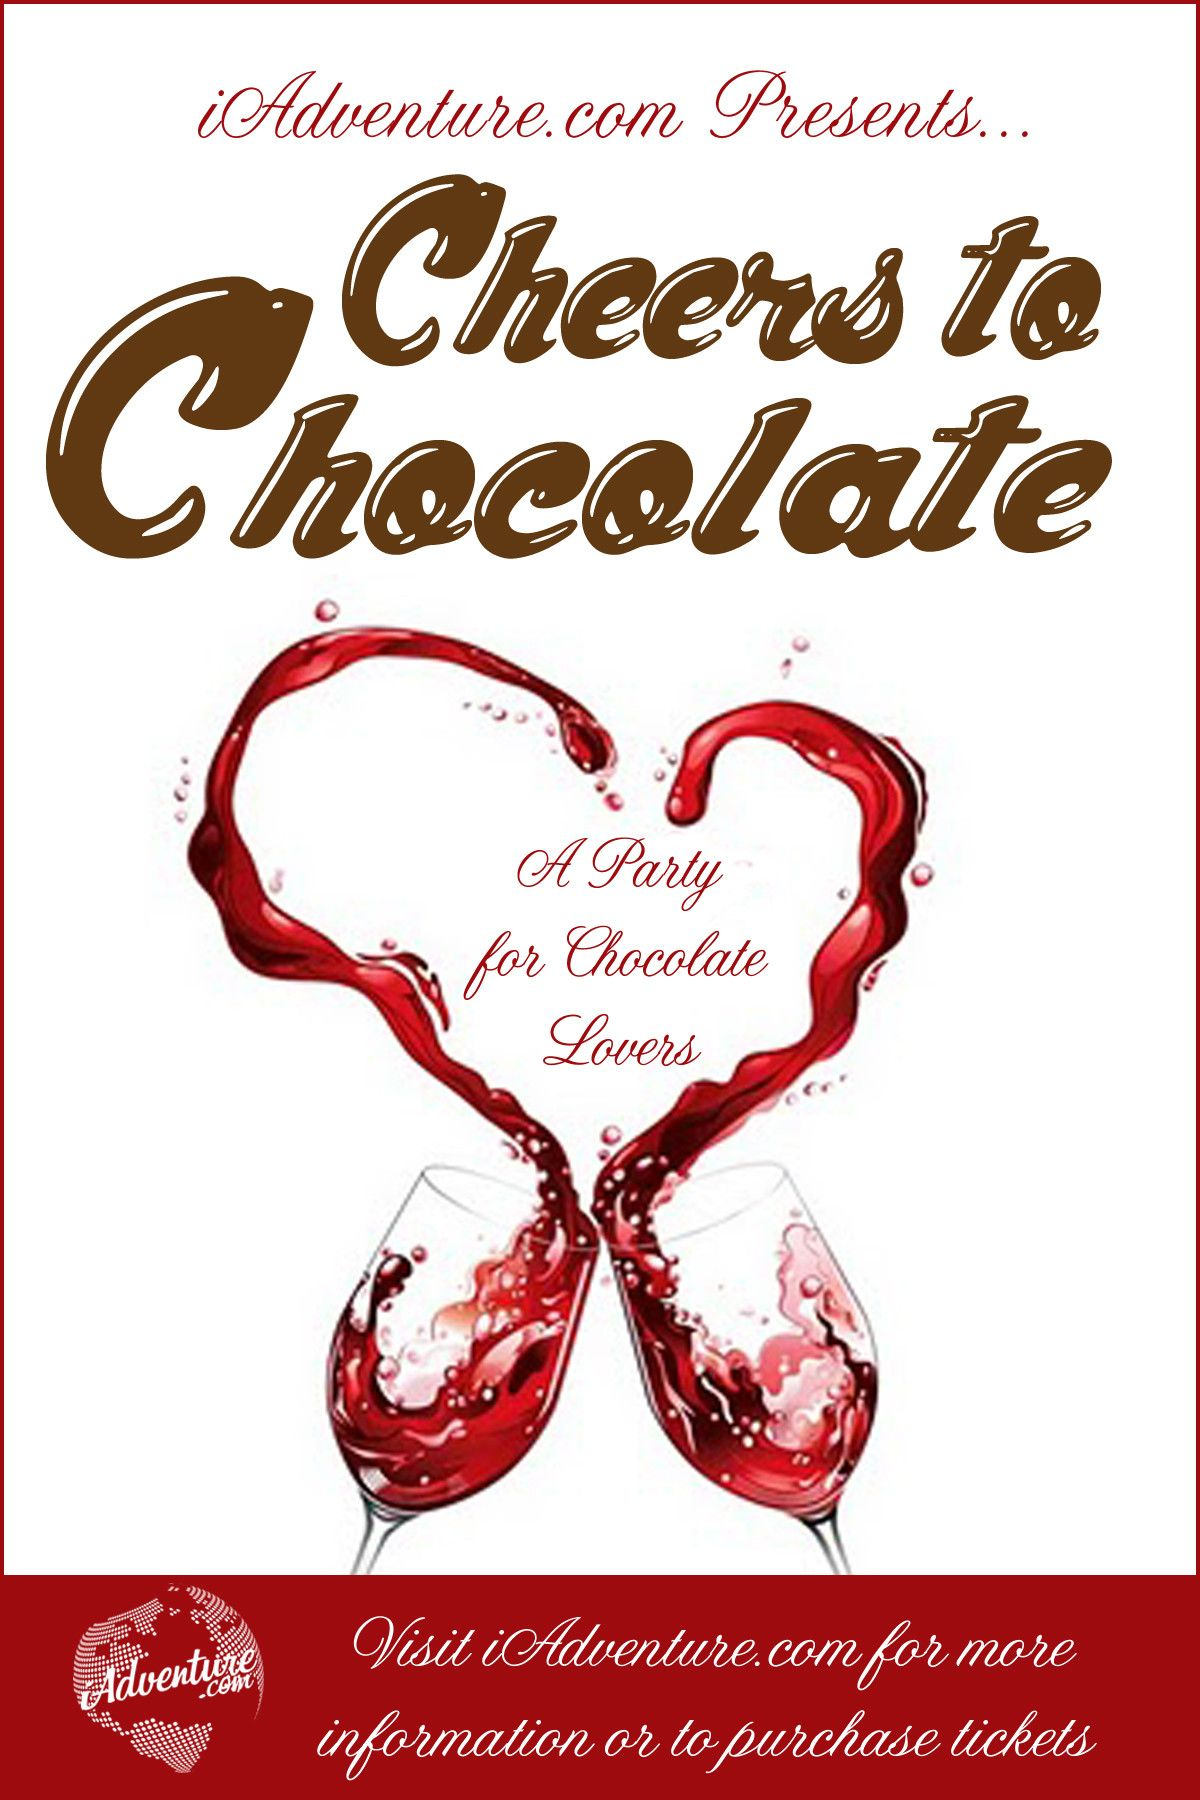 Cheers To Chocolate Event In Nyc Wine Festival Chocolate Lovers Heart Sunglass